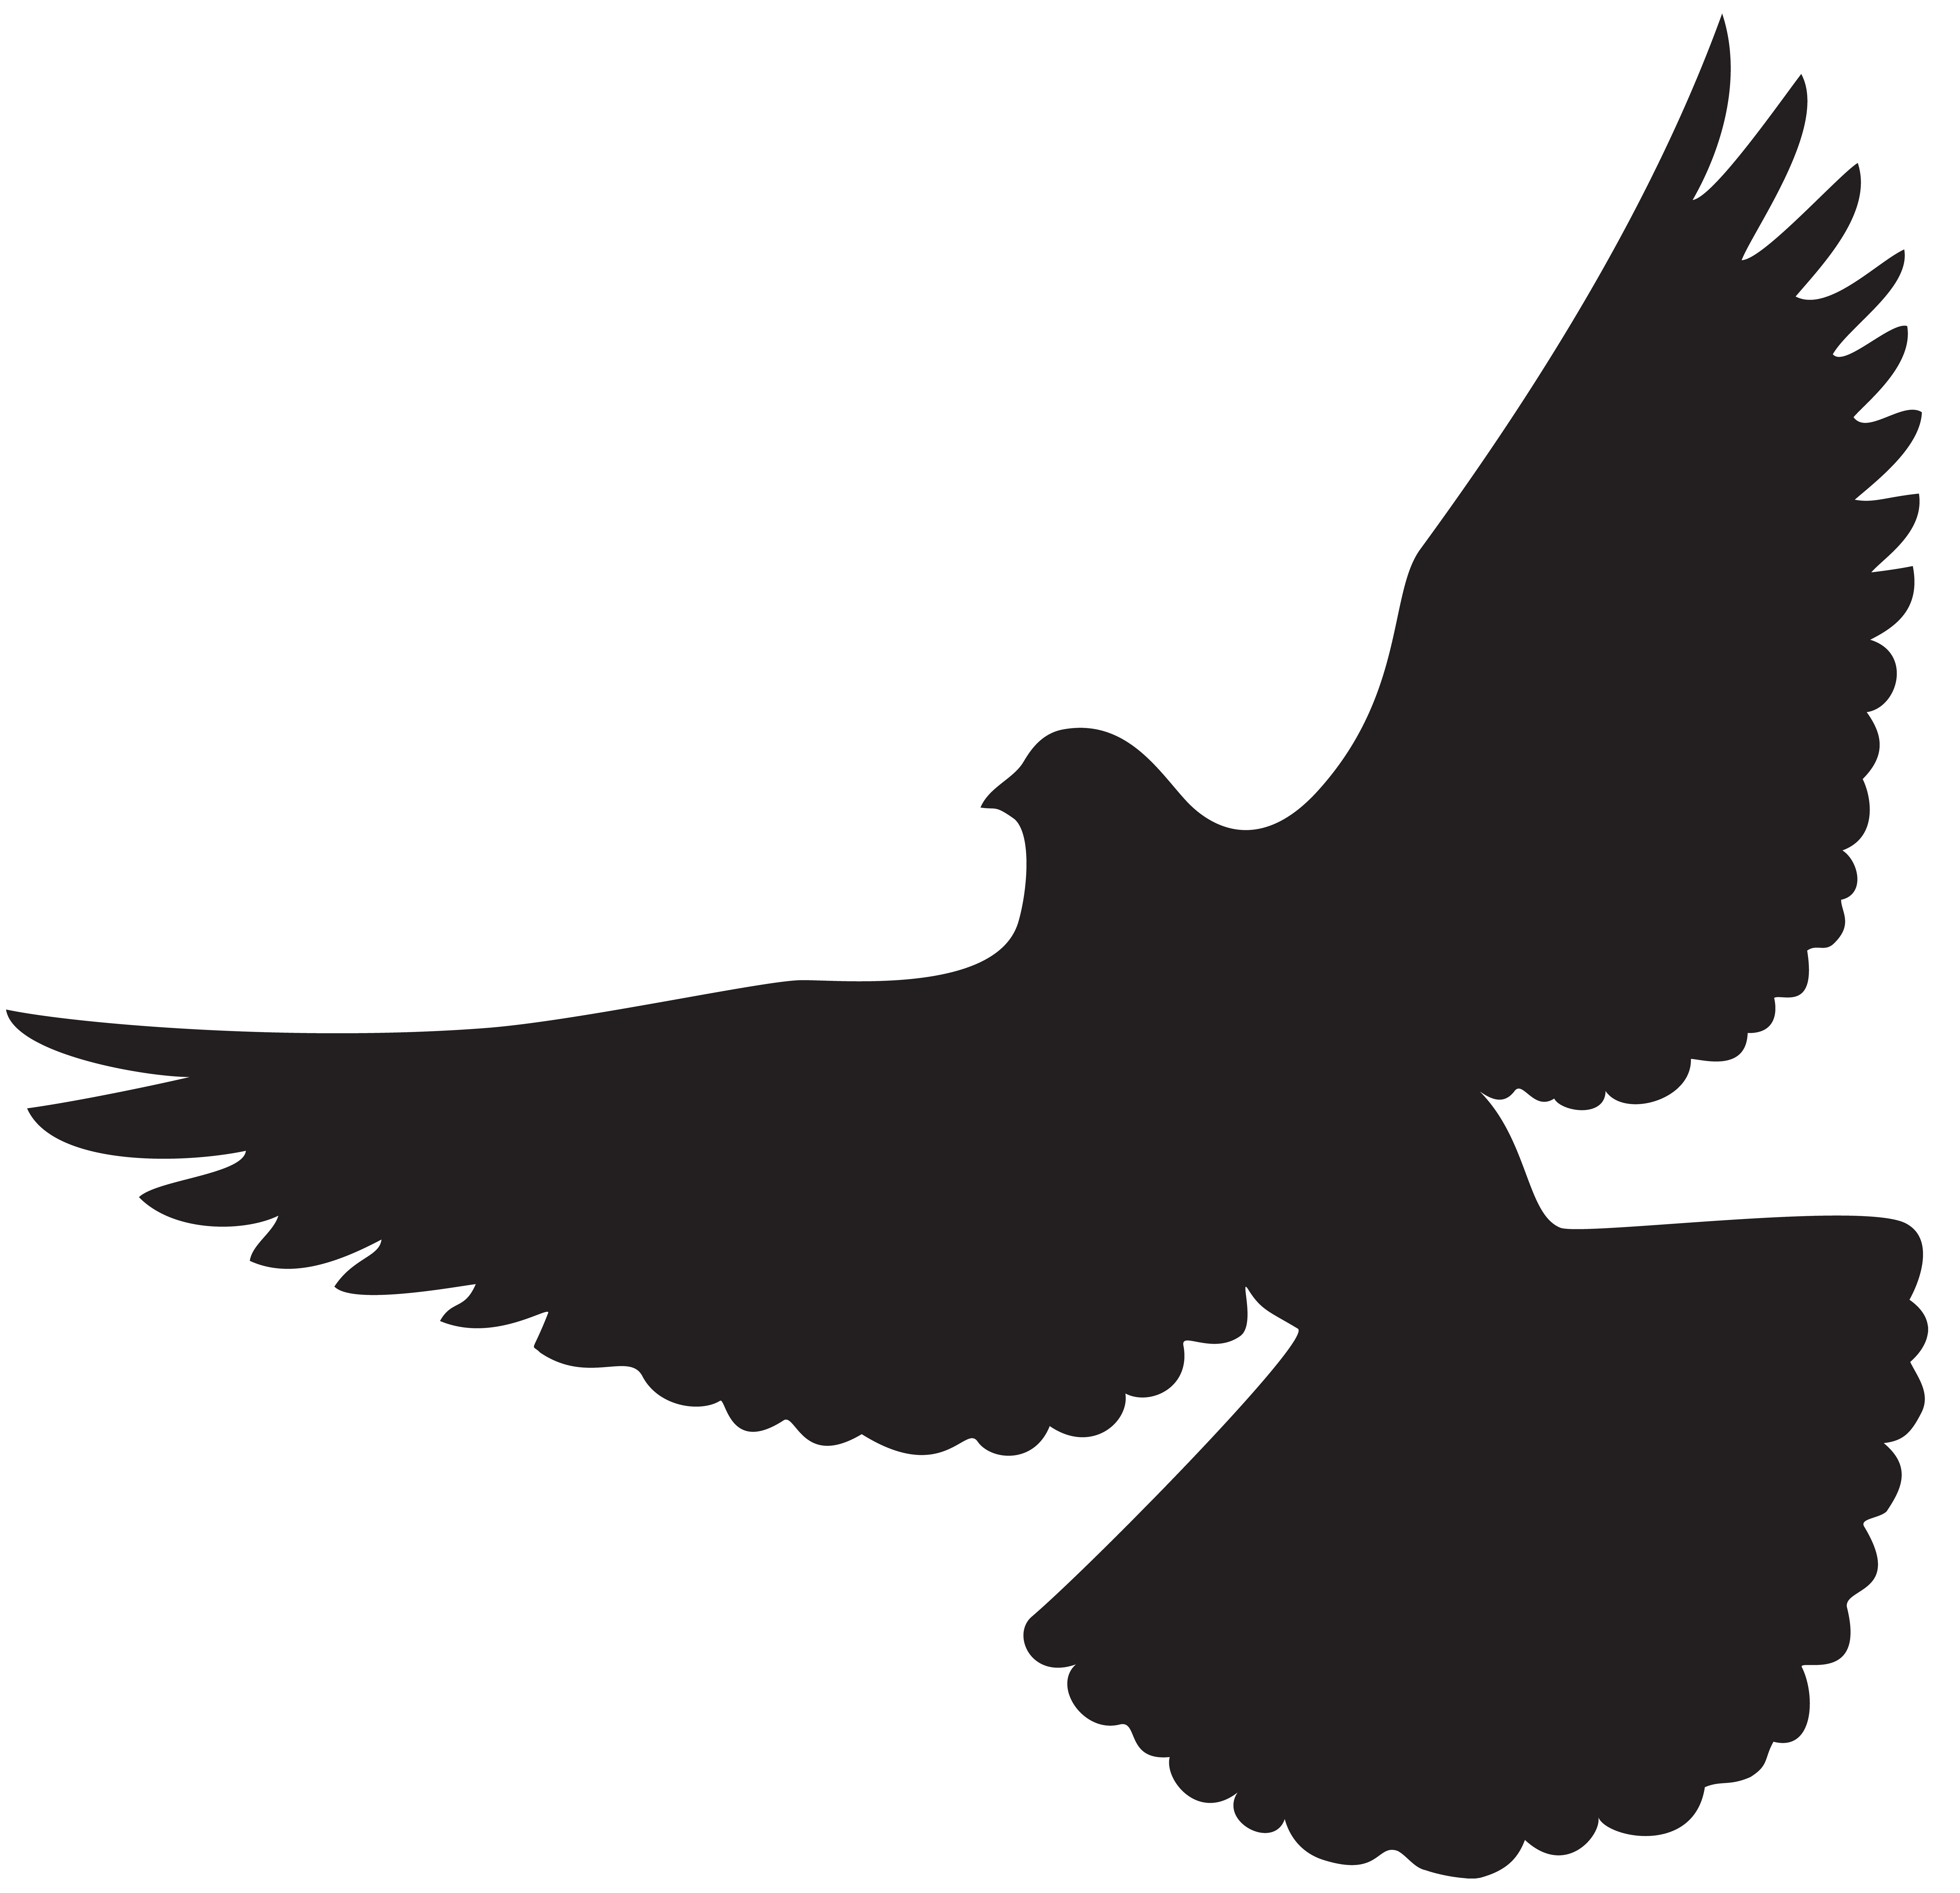 8000x7727 Dove Silhouette Png Clip Artu200b Gallery Yopriceville